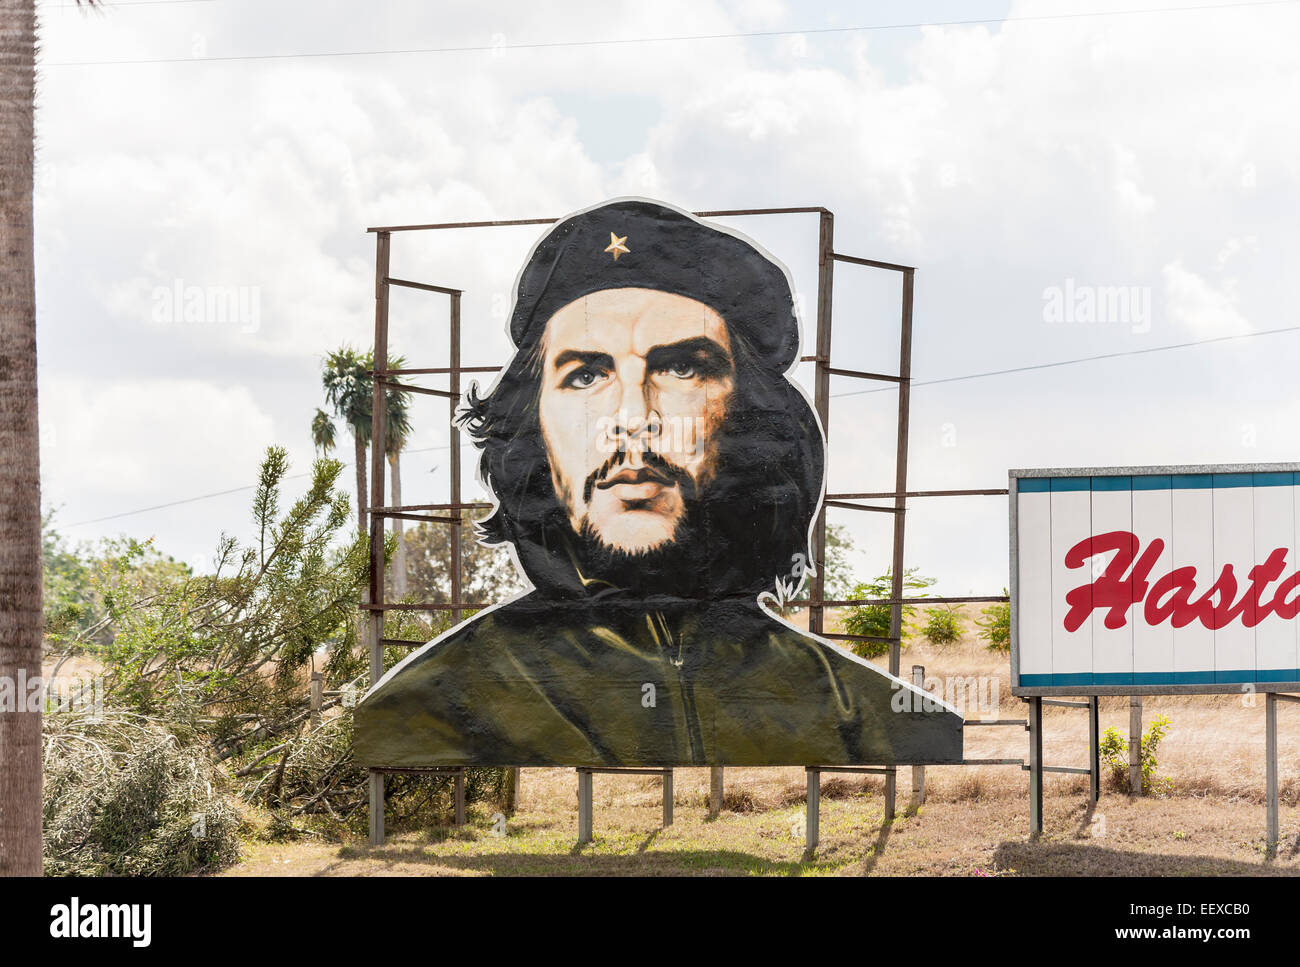 Typical large roadside billboard image of the famous national revolutionary hero and patriot Che Guevara, in Camaguey, - Stock Image